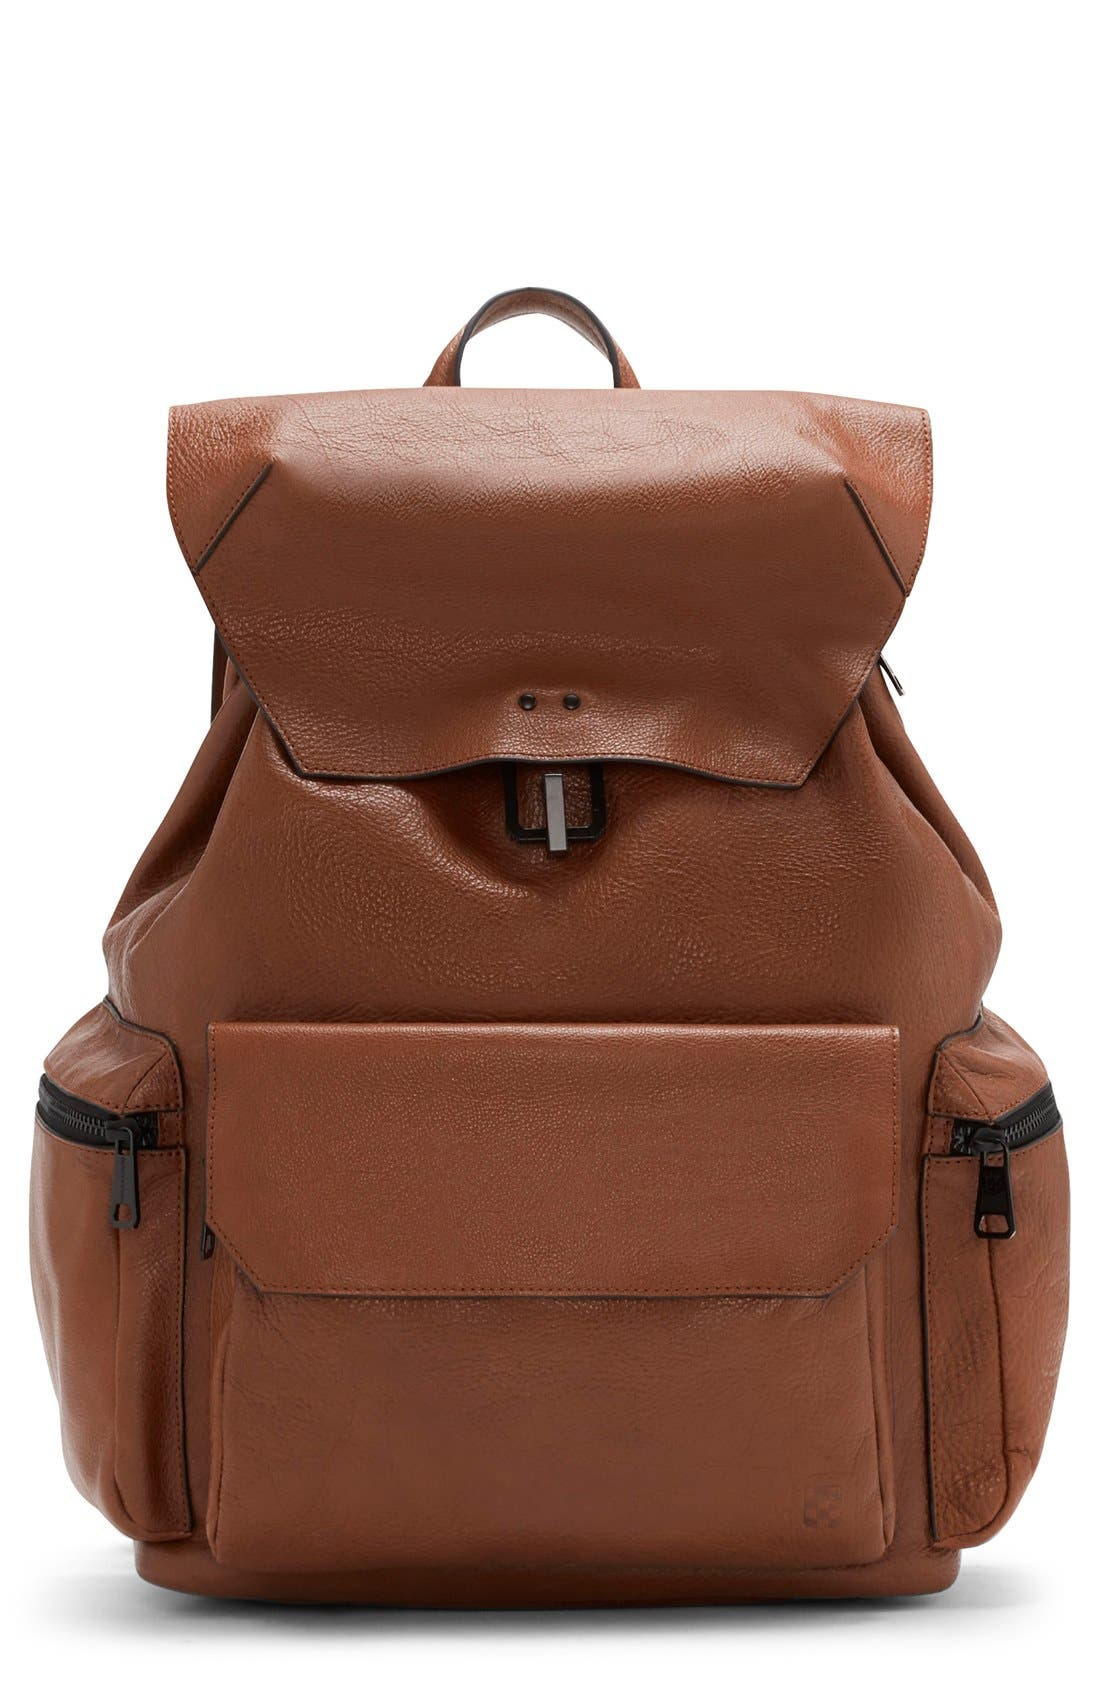 Vince Camuto Travo Leather Backpack